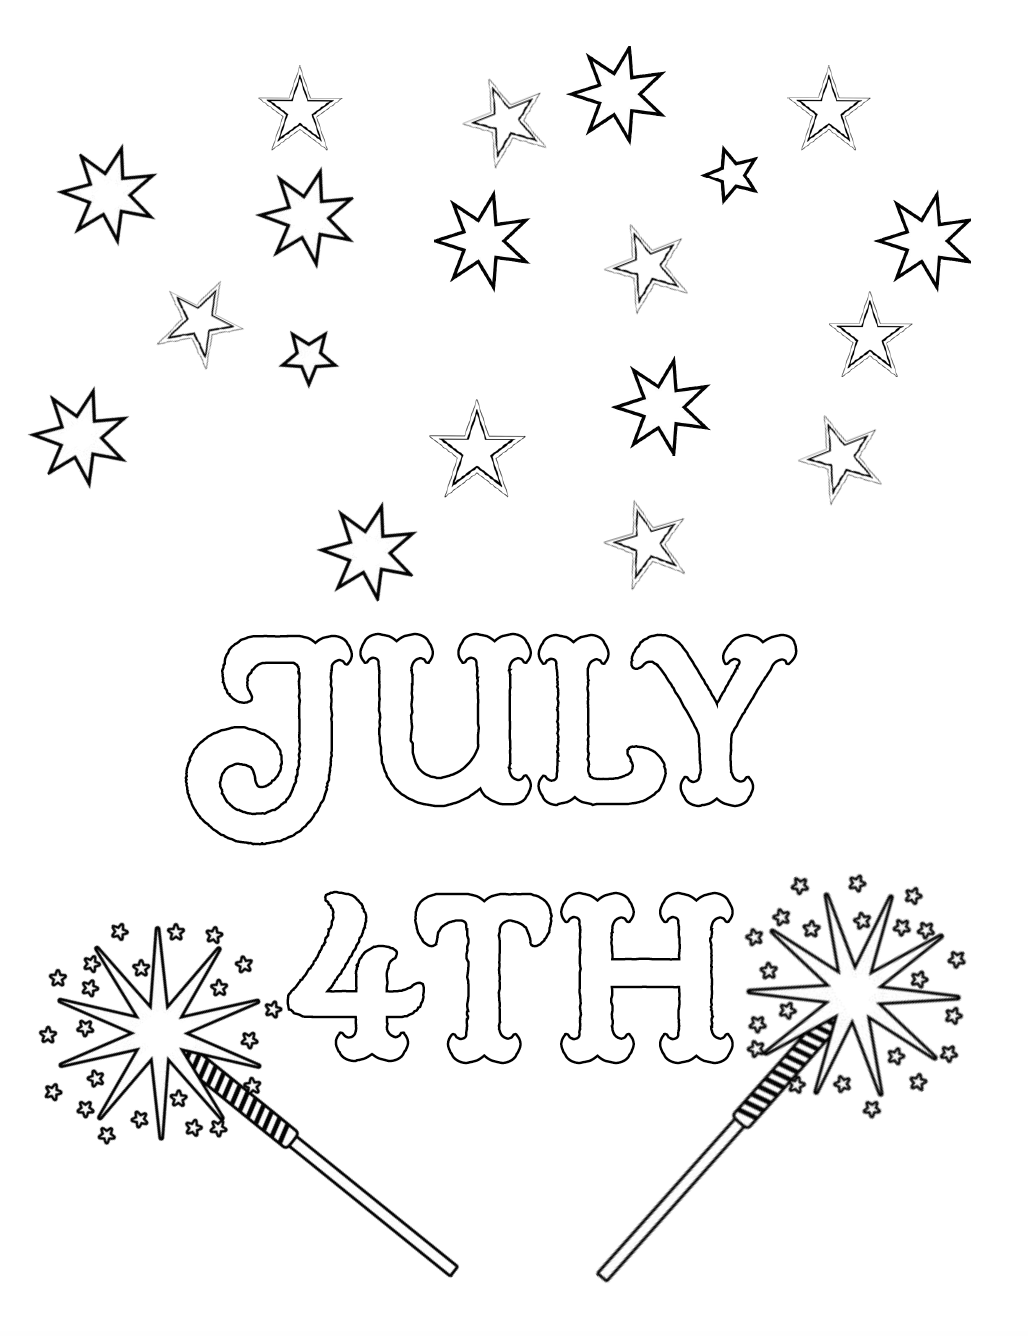 coloring pictures 4th of july patriotic 4th of july coloring pages 4th of july free july coloring of pictures 4th